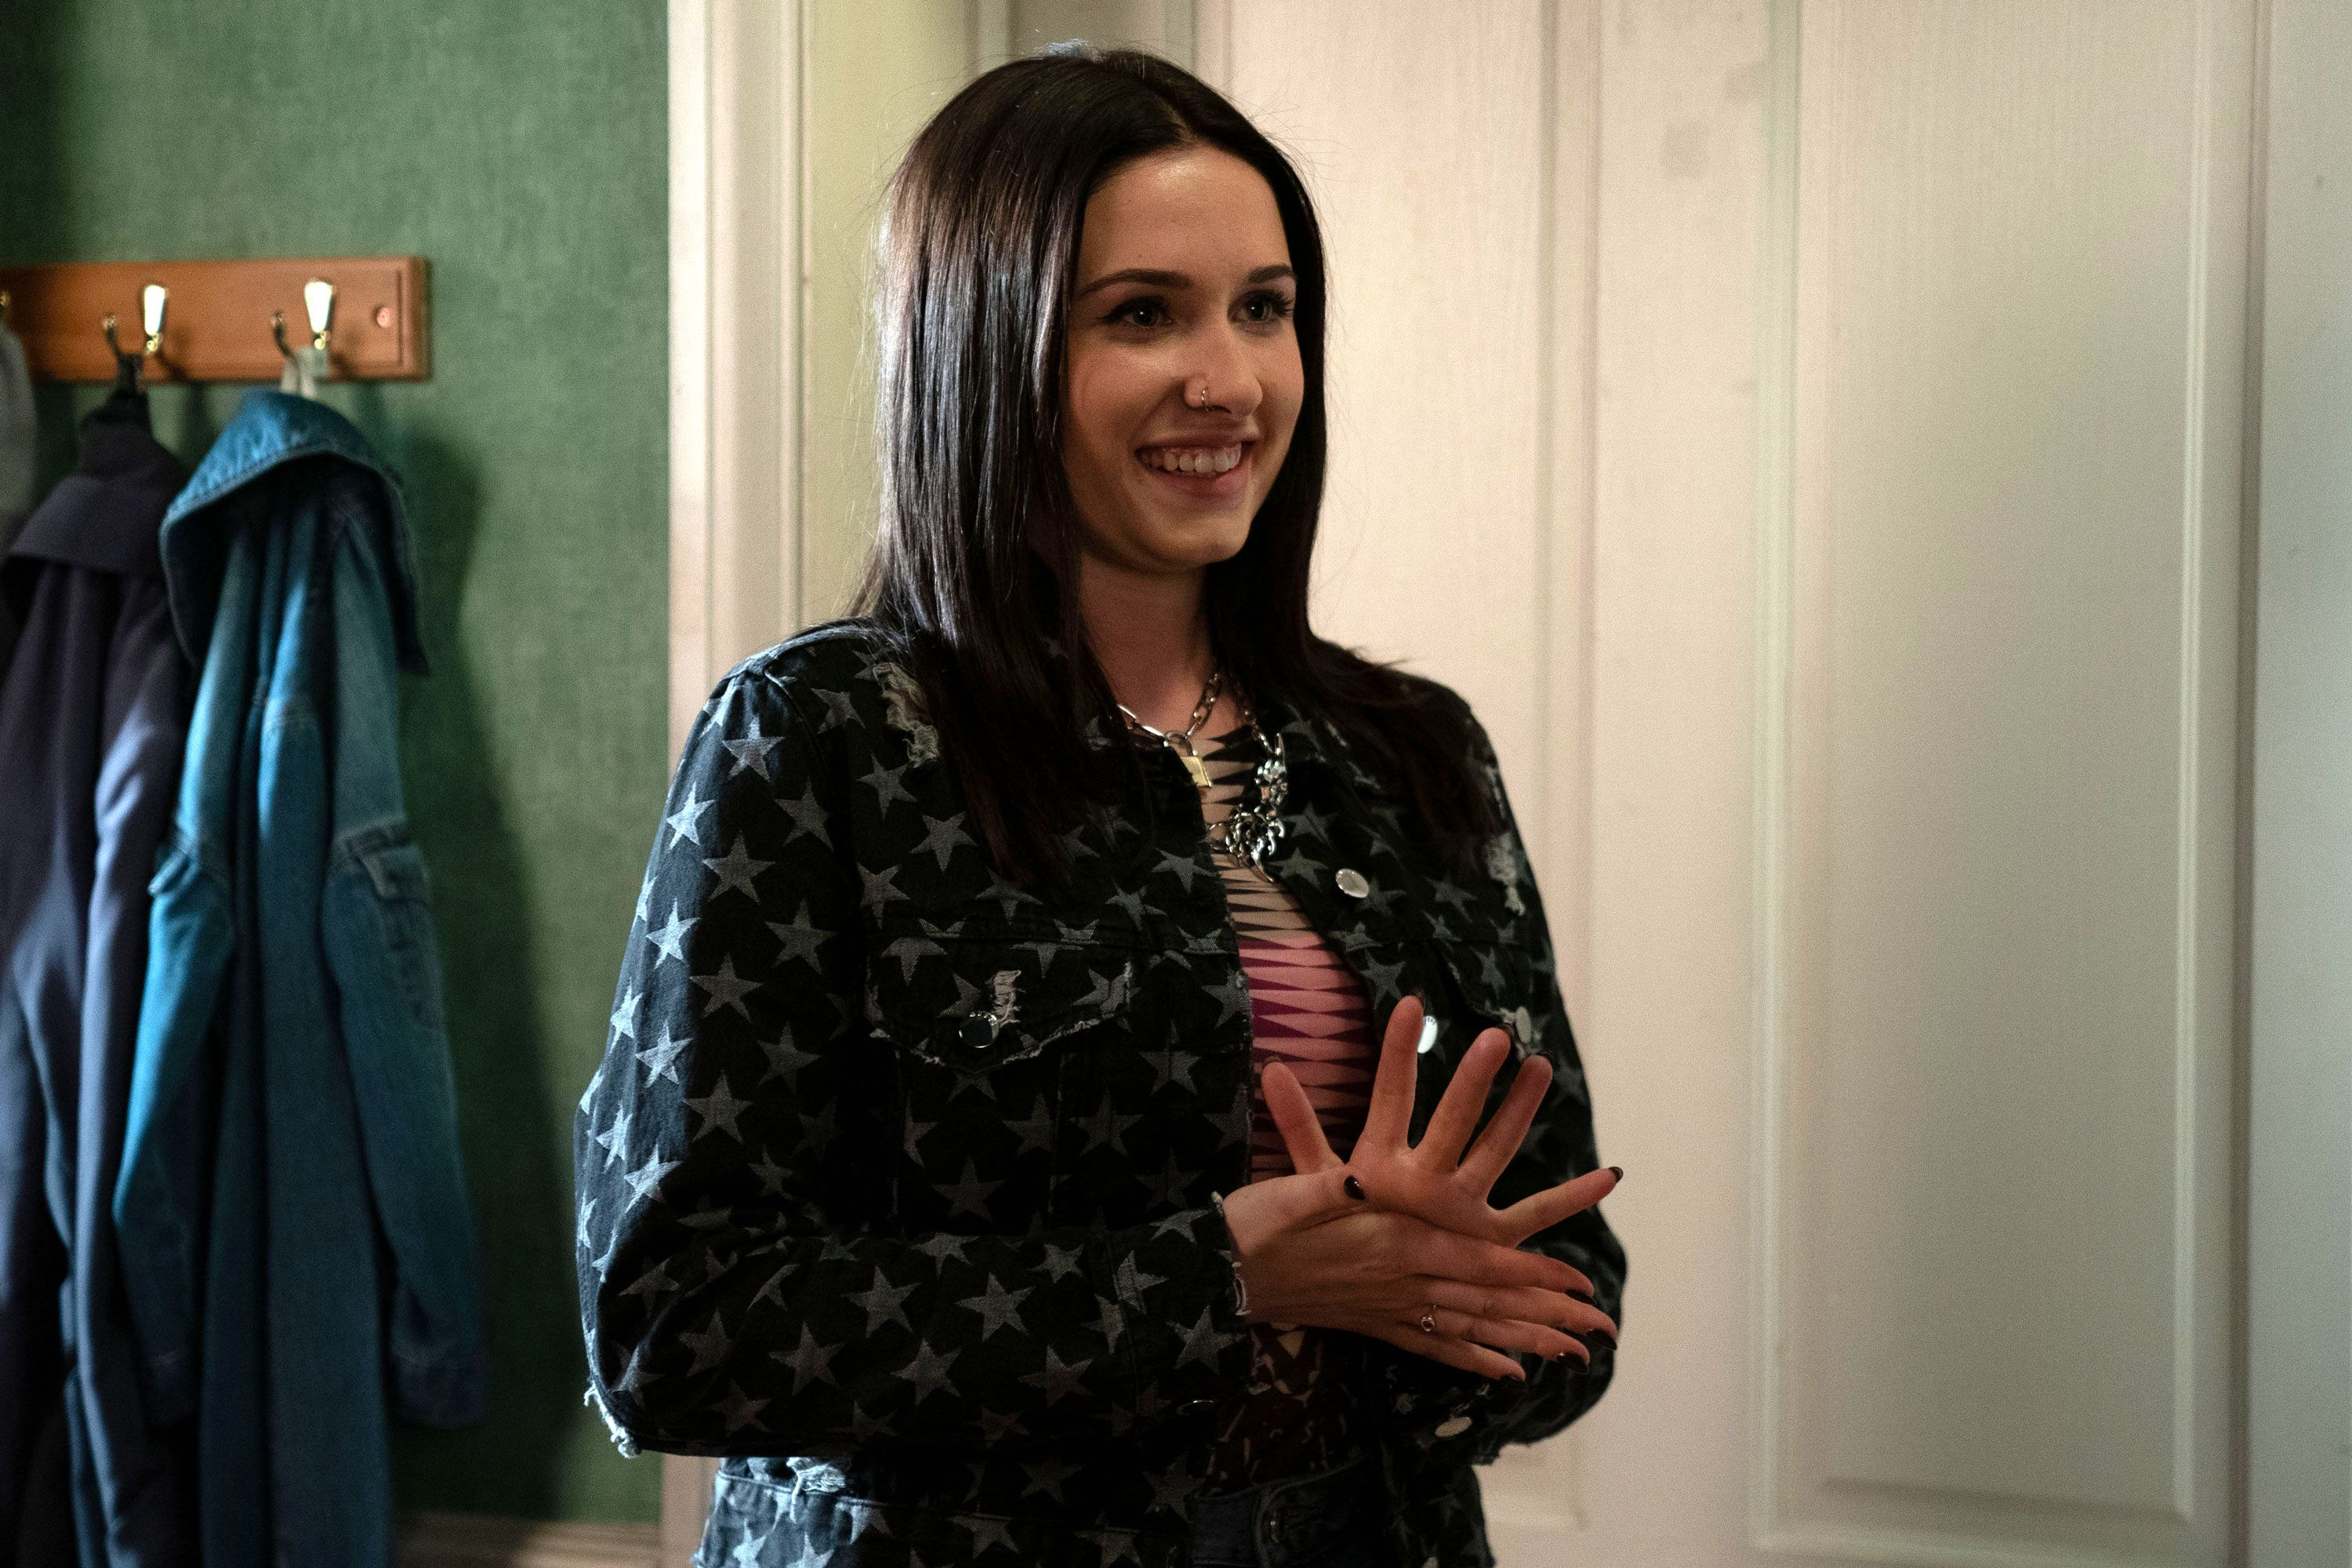 EastEnders reveals a first look at Dotty Cotton's return to Walford